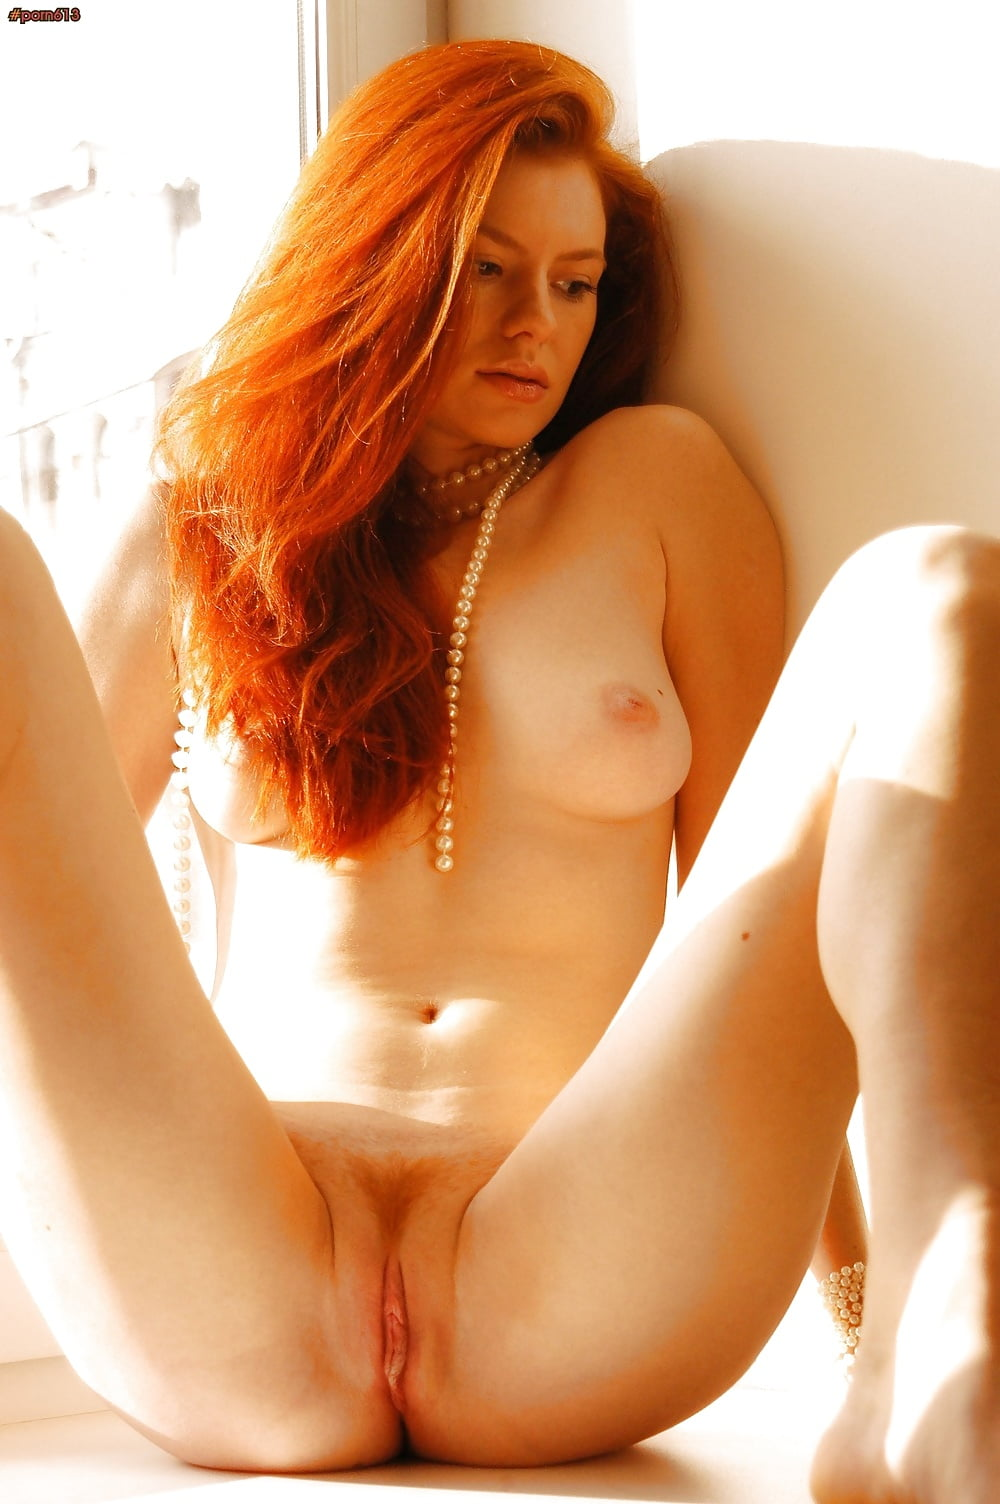 Young red heads nude pictures, cody lane sex scene